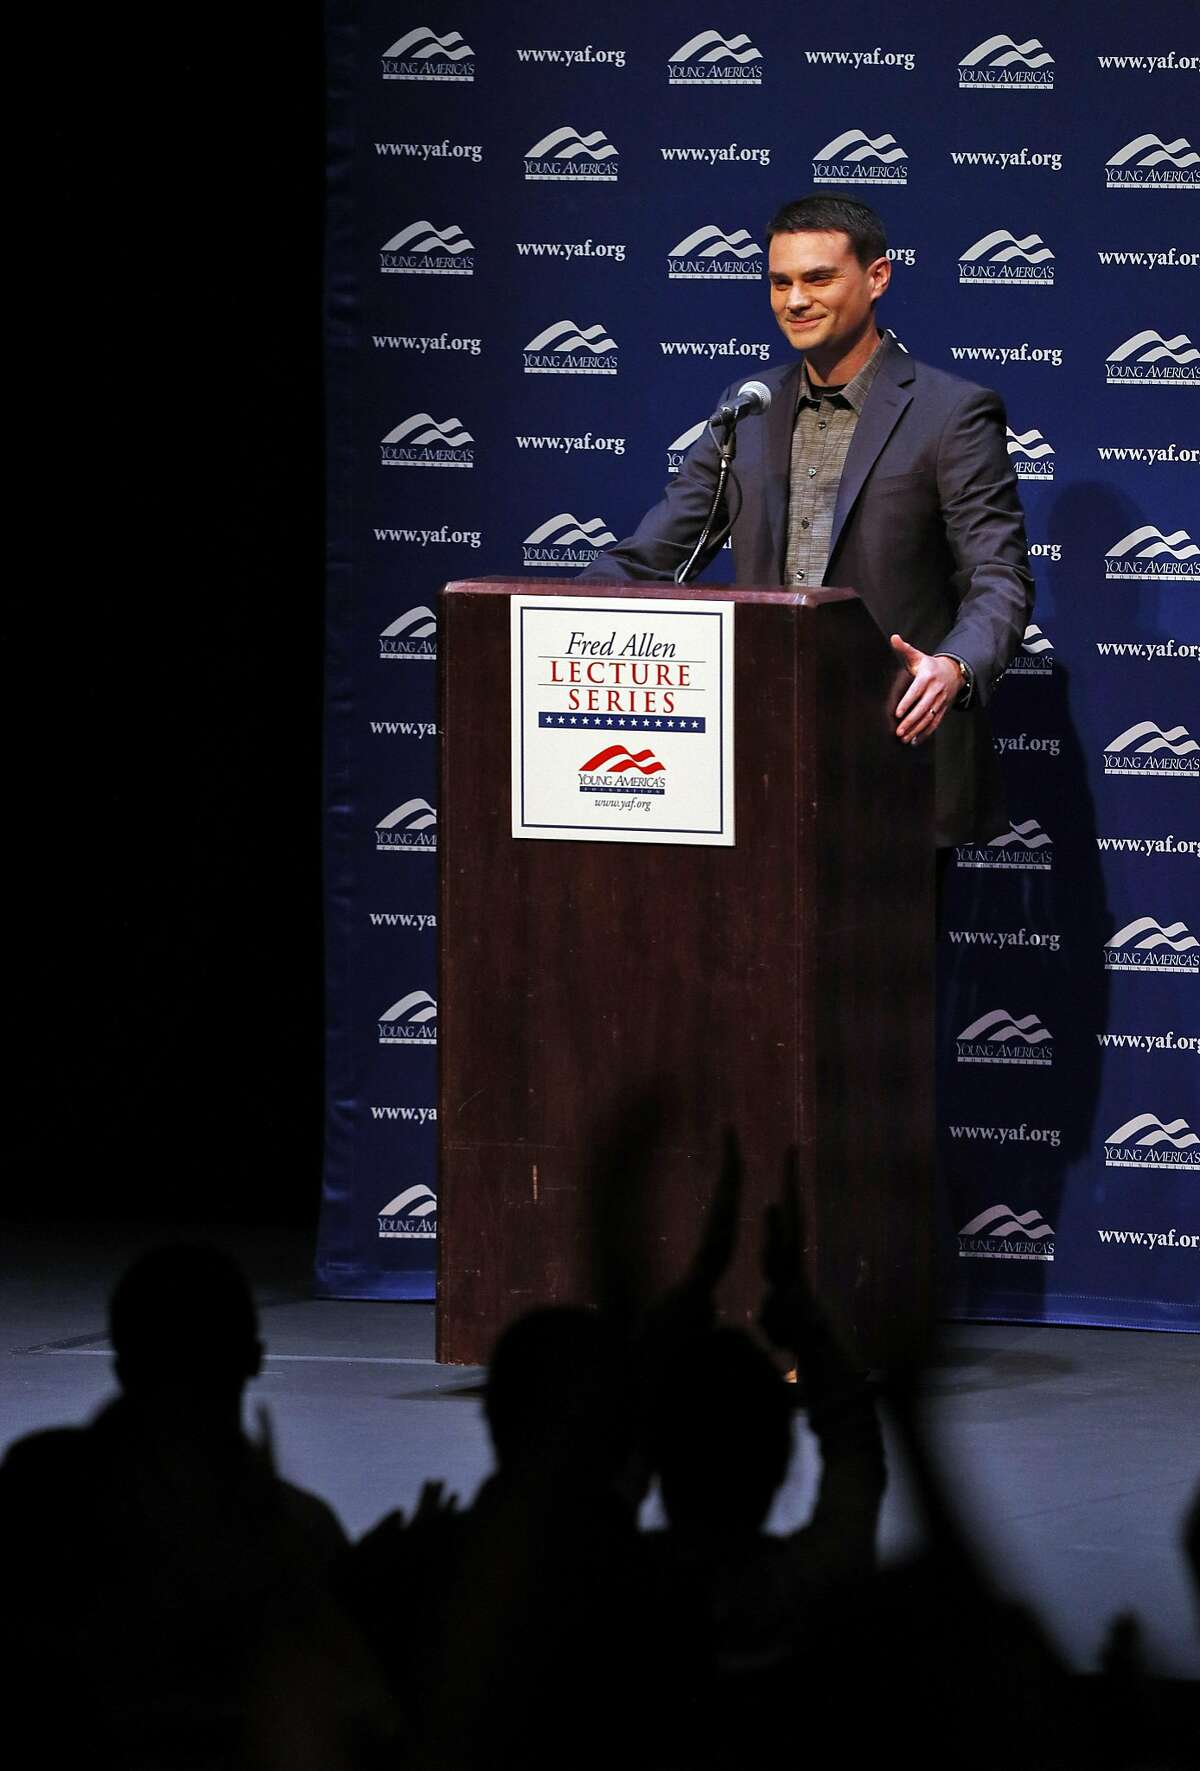 Conservative political commentator Ben Shapiro gets a standing ovation before he speaks at Zellerbach Hall on the UC Berkeley campus in Berkeley, Calif., on Thursday, September 14, 2017.